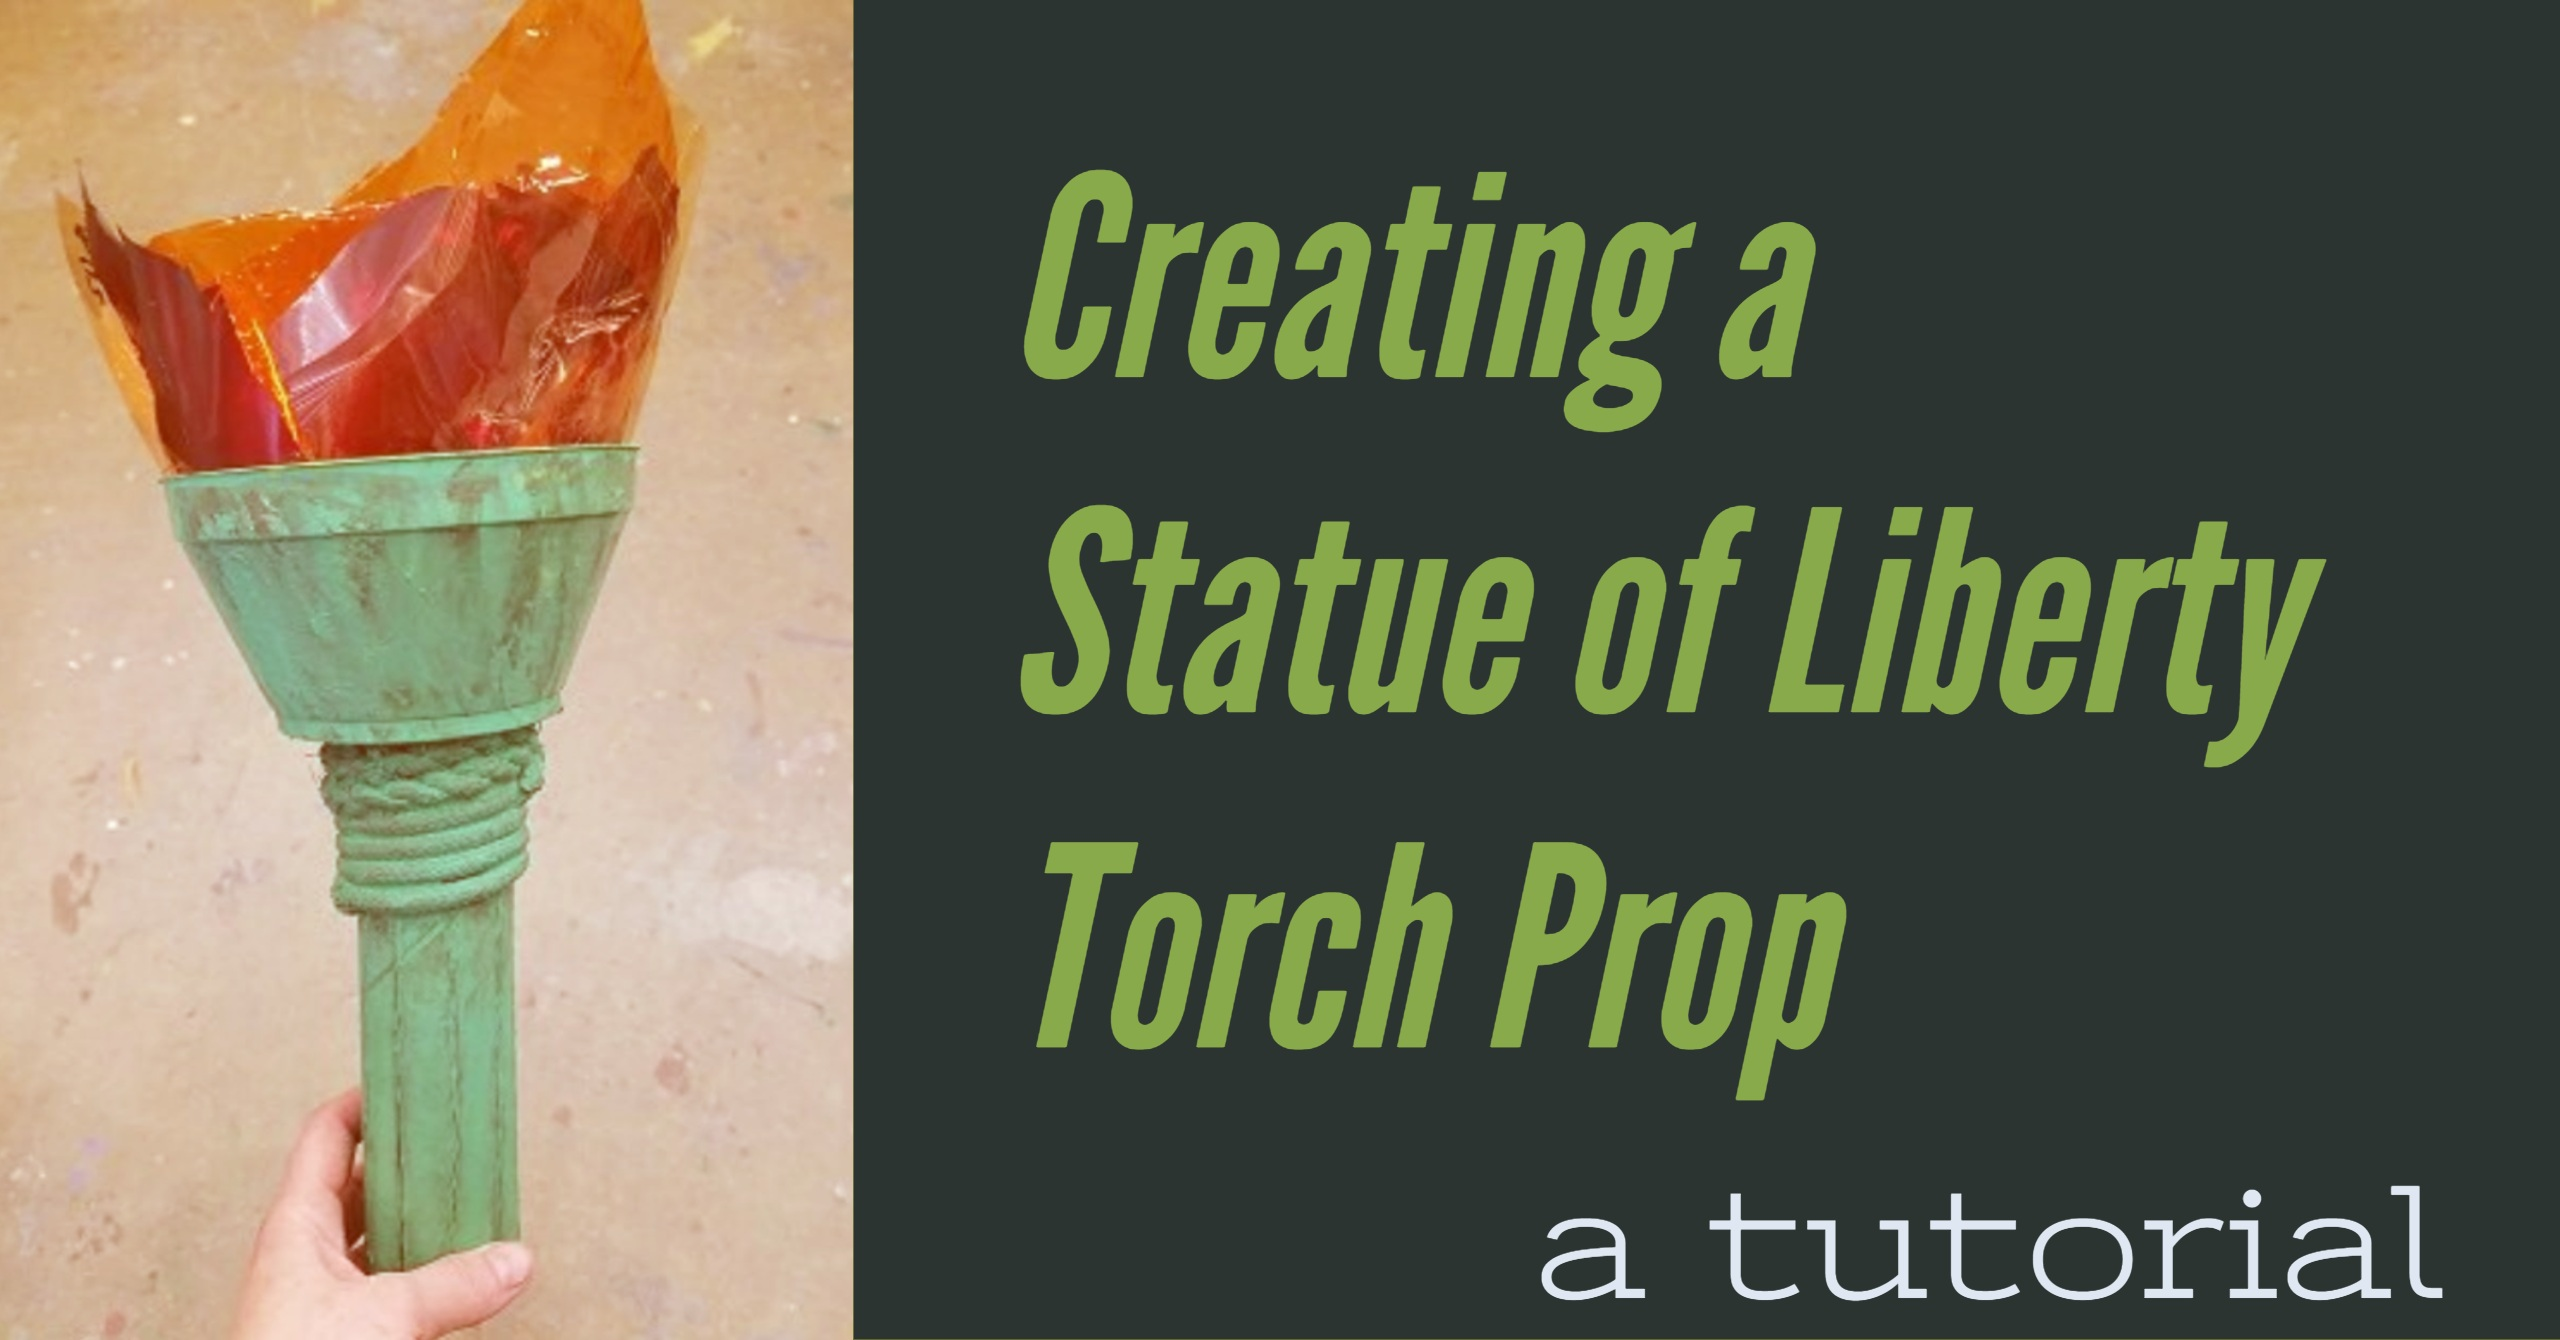 Statue of Liberty Torch Prop Tutorial